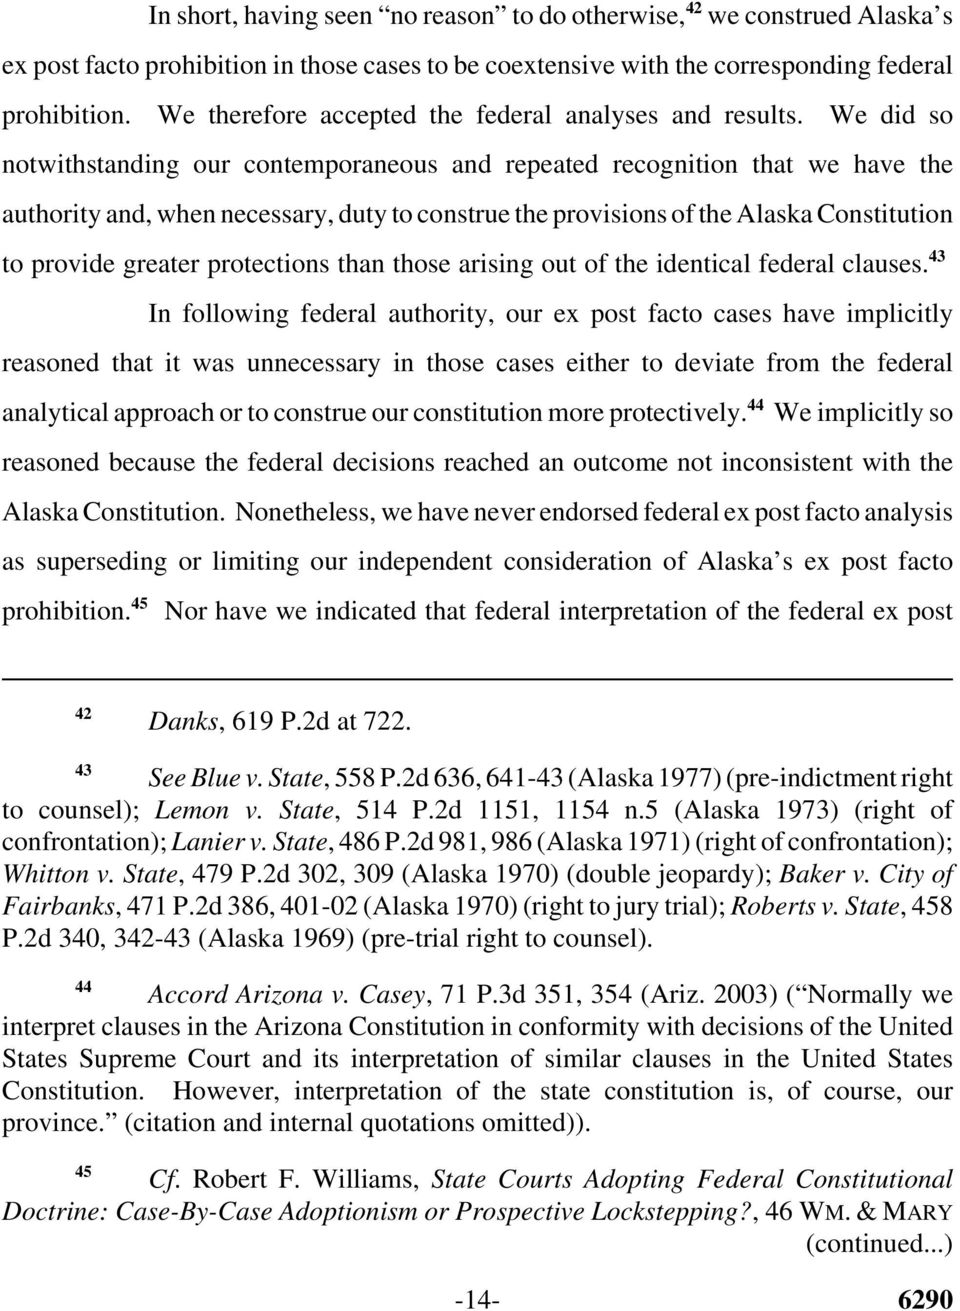 We did so notwithstanding our contemporaneous and repeated recognition that we have the authority and, when necessary, duty to construe the provisions of the Alaska Constitution to provide greater